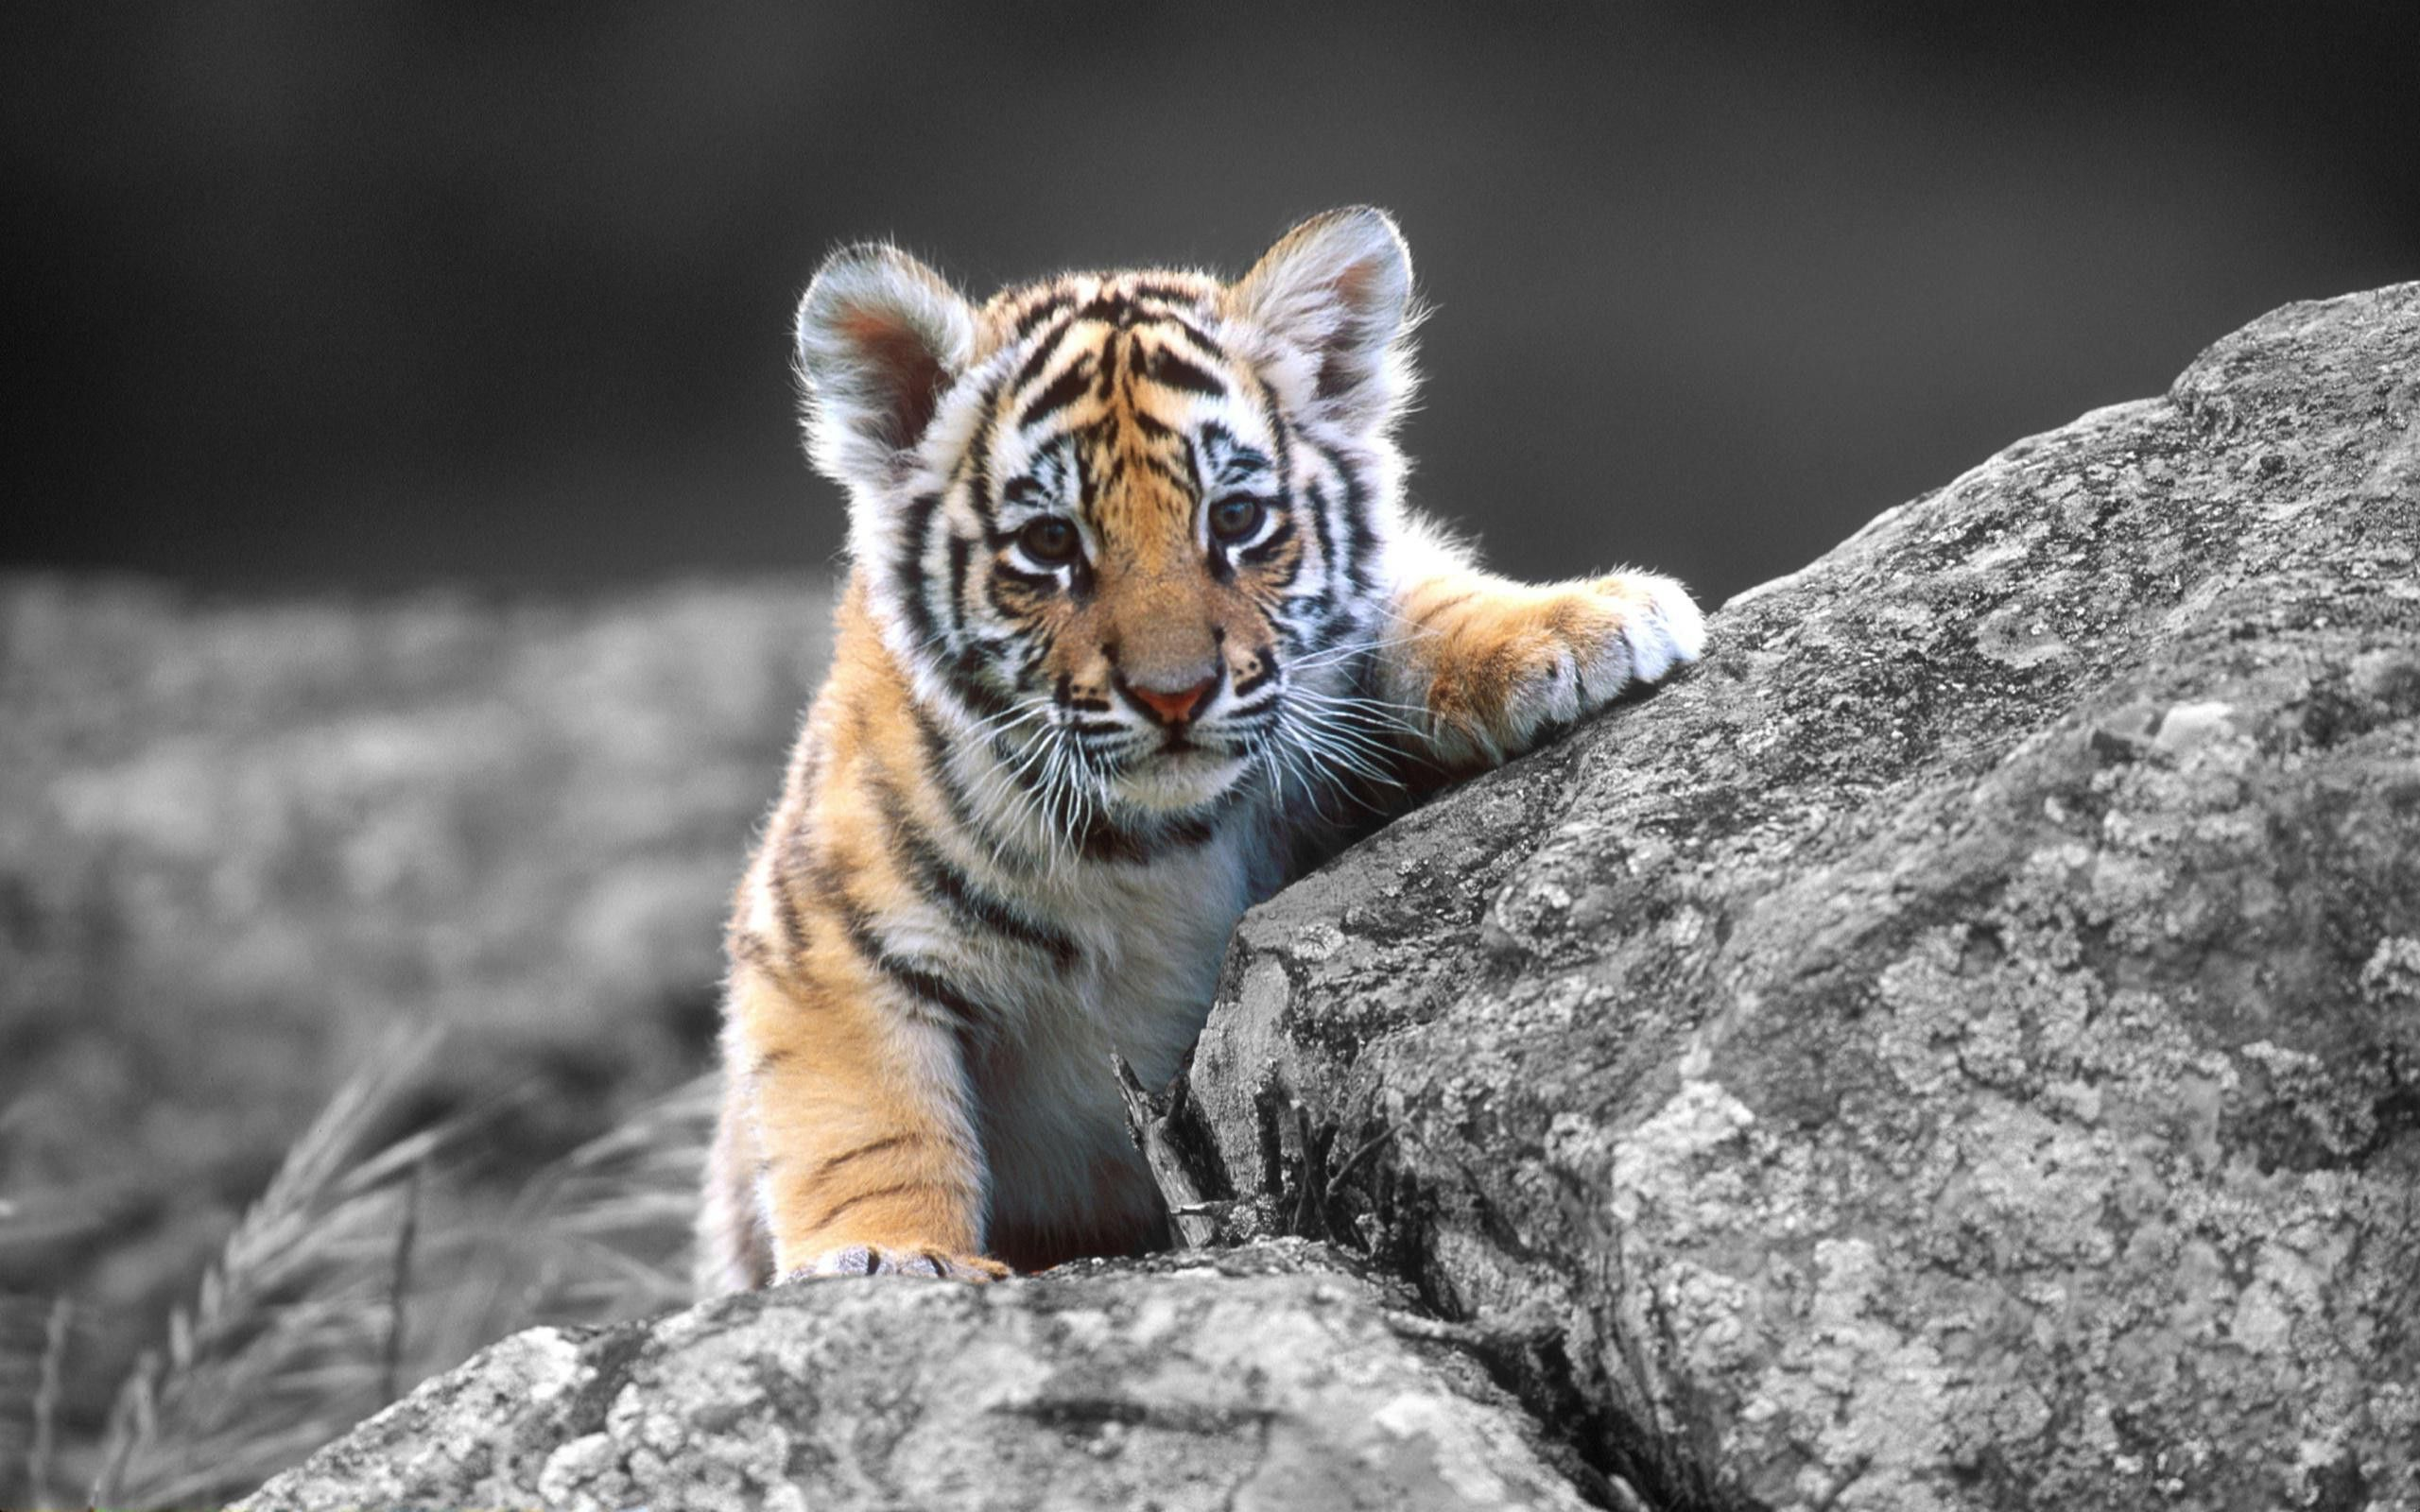 animals tiger baby tiger wallpaper - your hd wallpaper #id55351